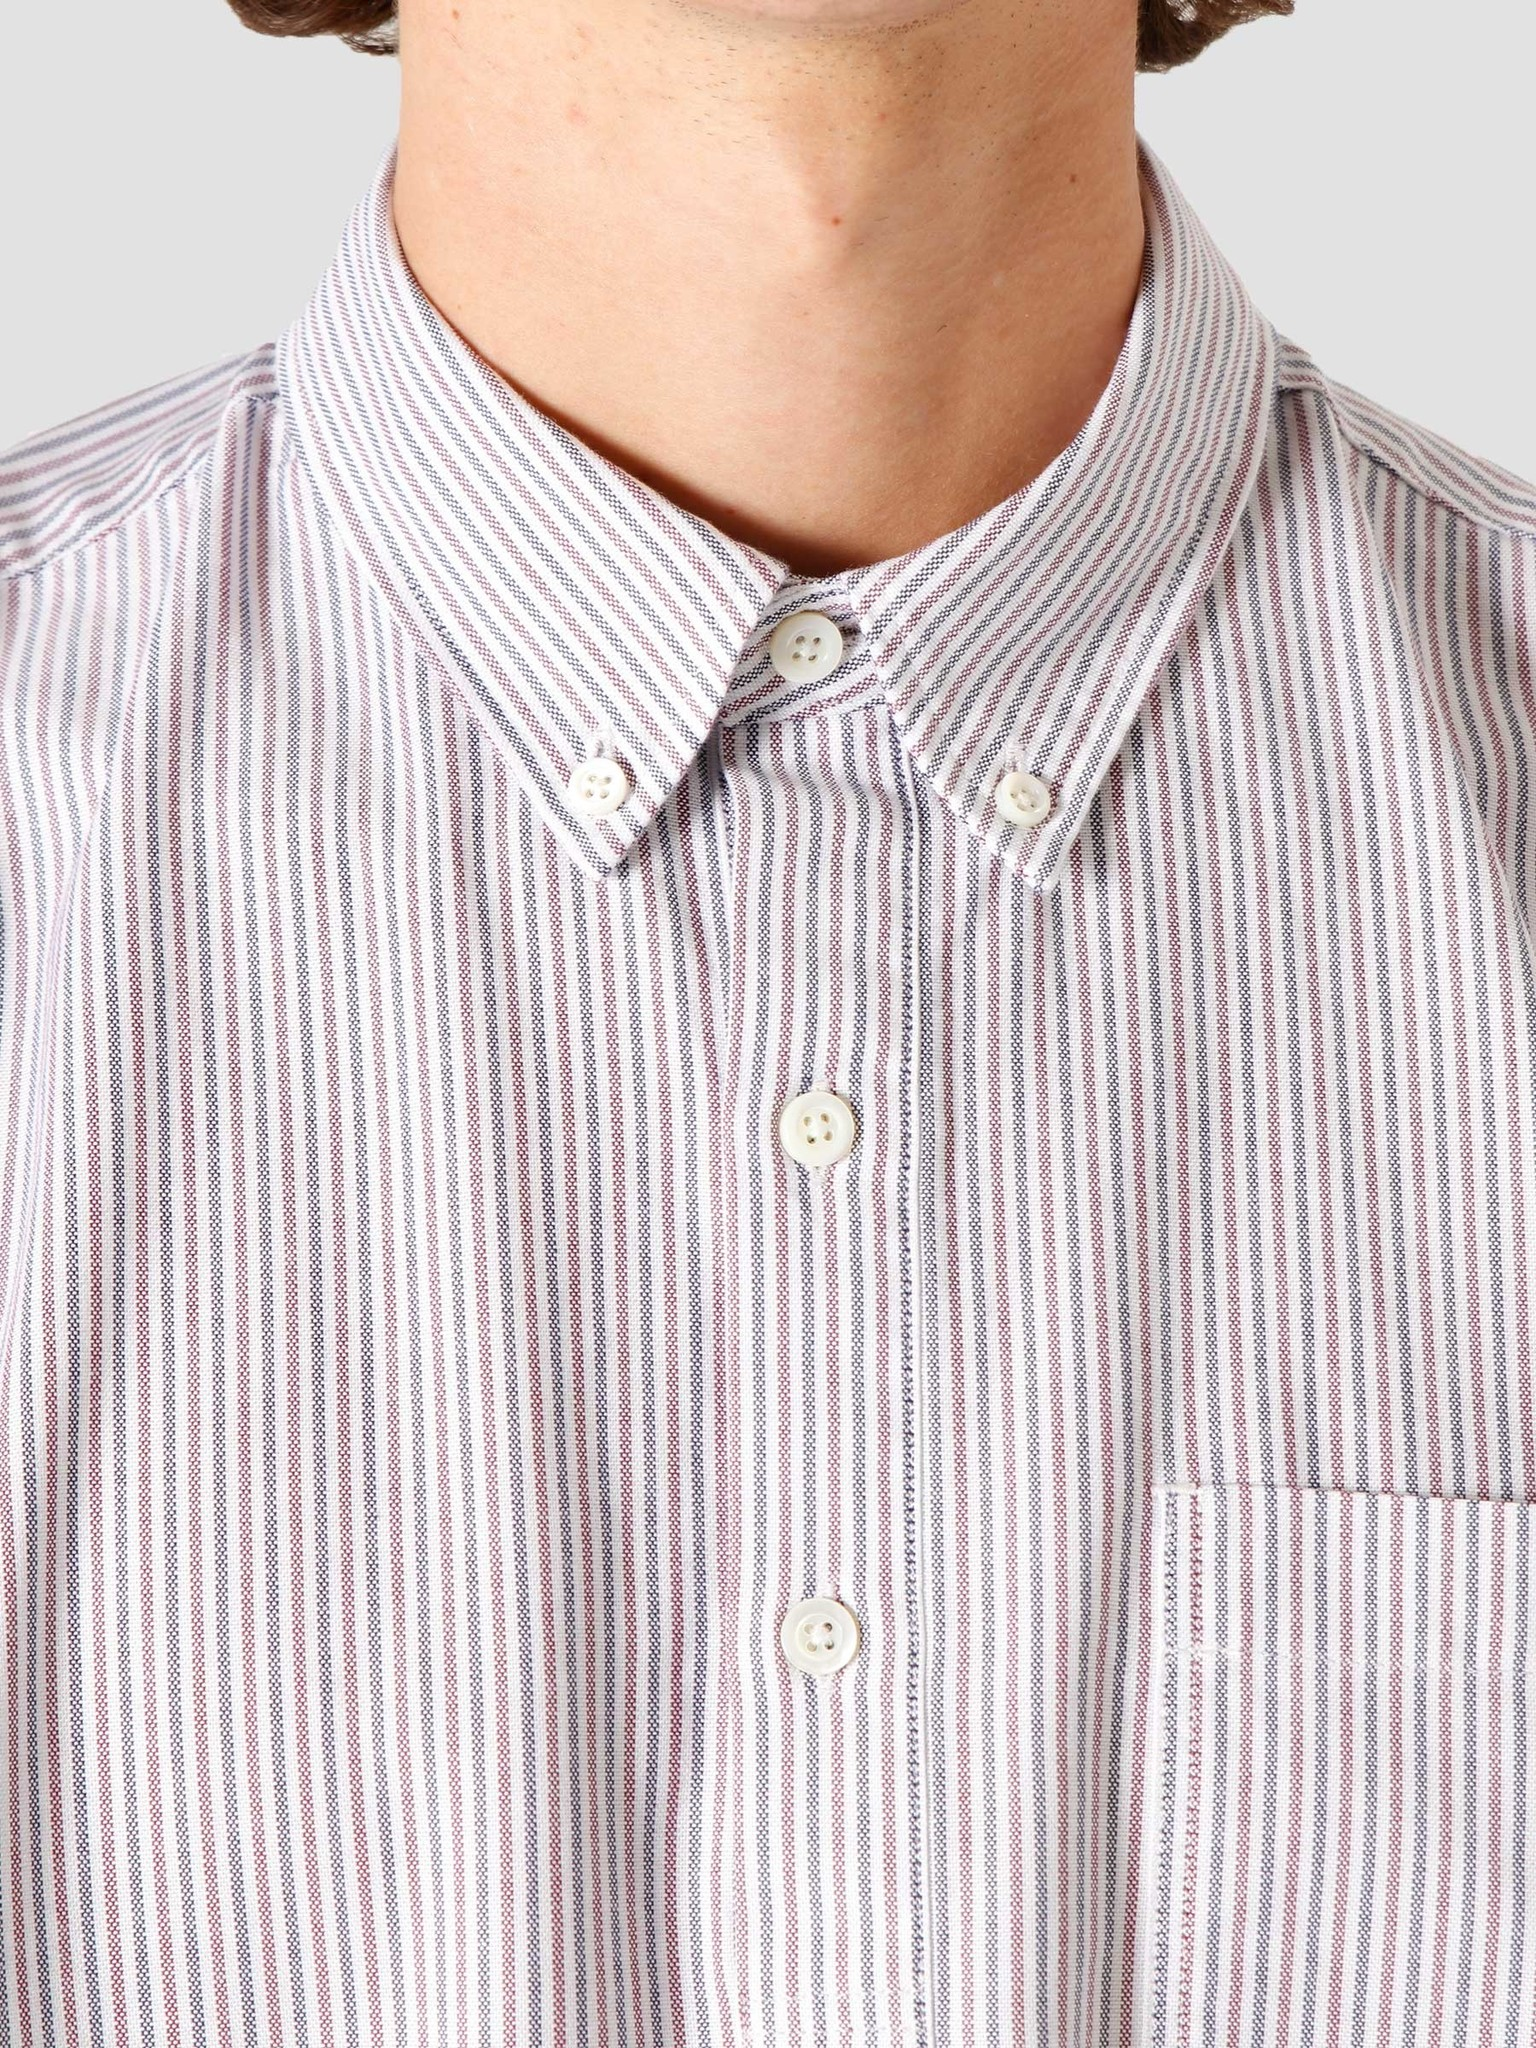 Norse Projects Norse Projects Oscar Oxford Shirt Eggplant Dark Navy Stripe N40-0514-2062